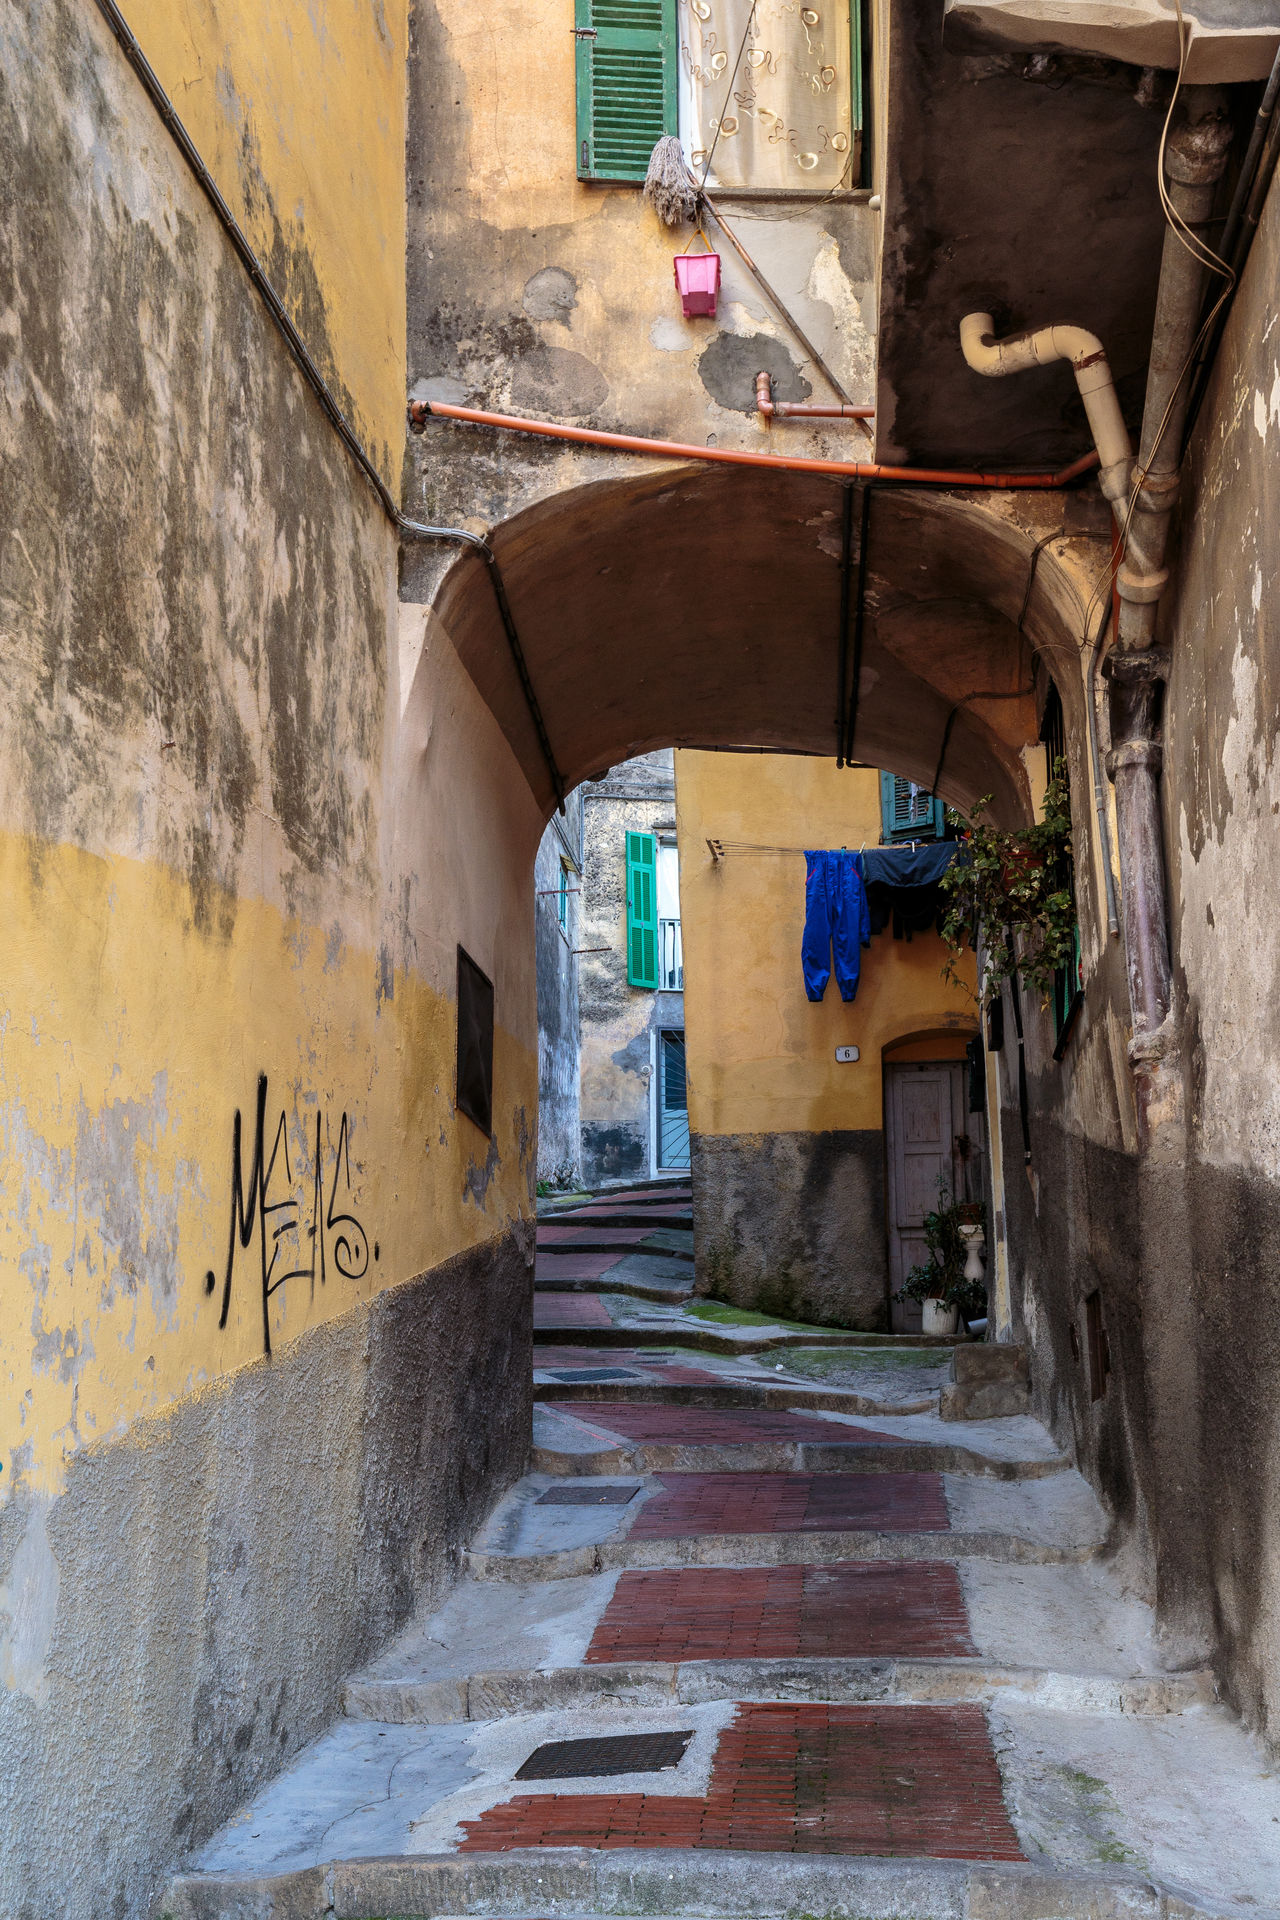 Alley Architecture Building Building Exterior Built Structure City Day No People Outdoors The Way Forward Walkway